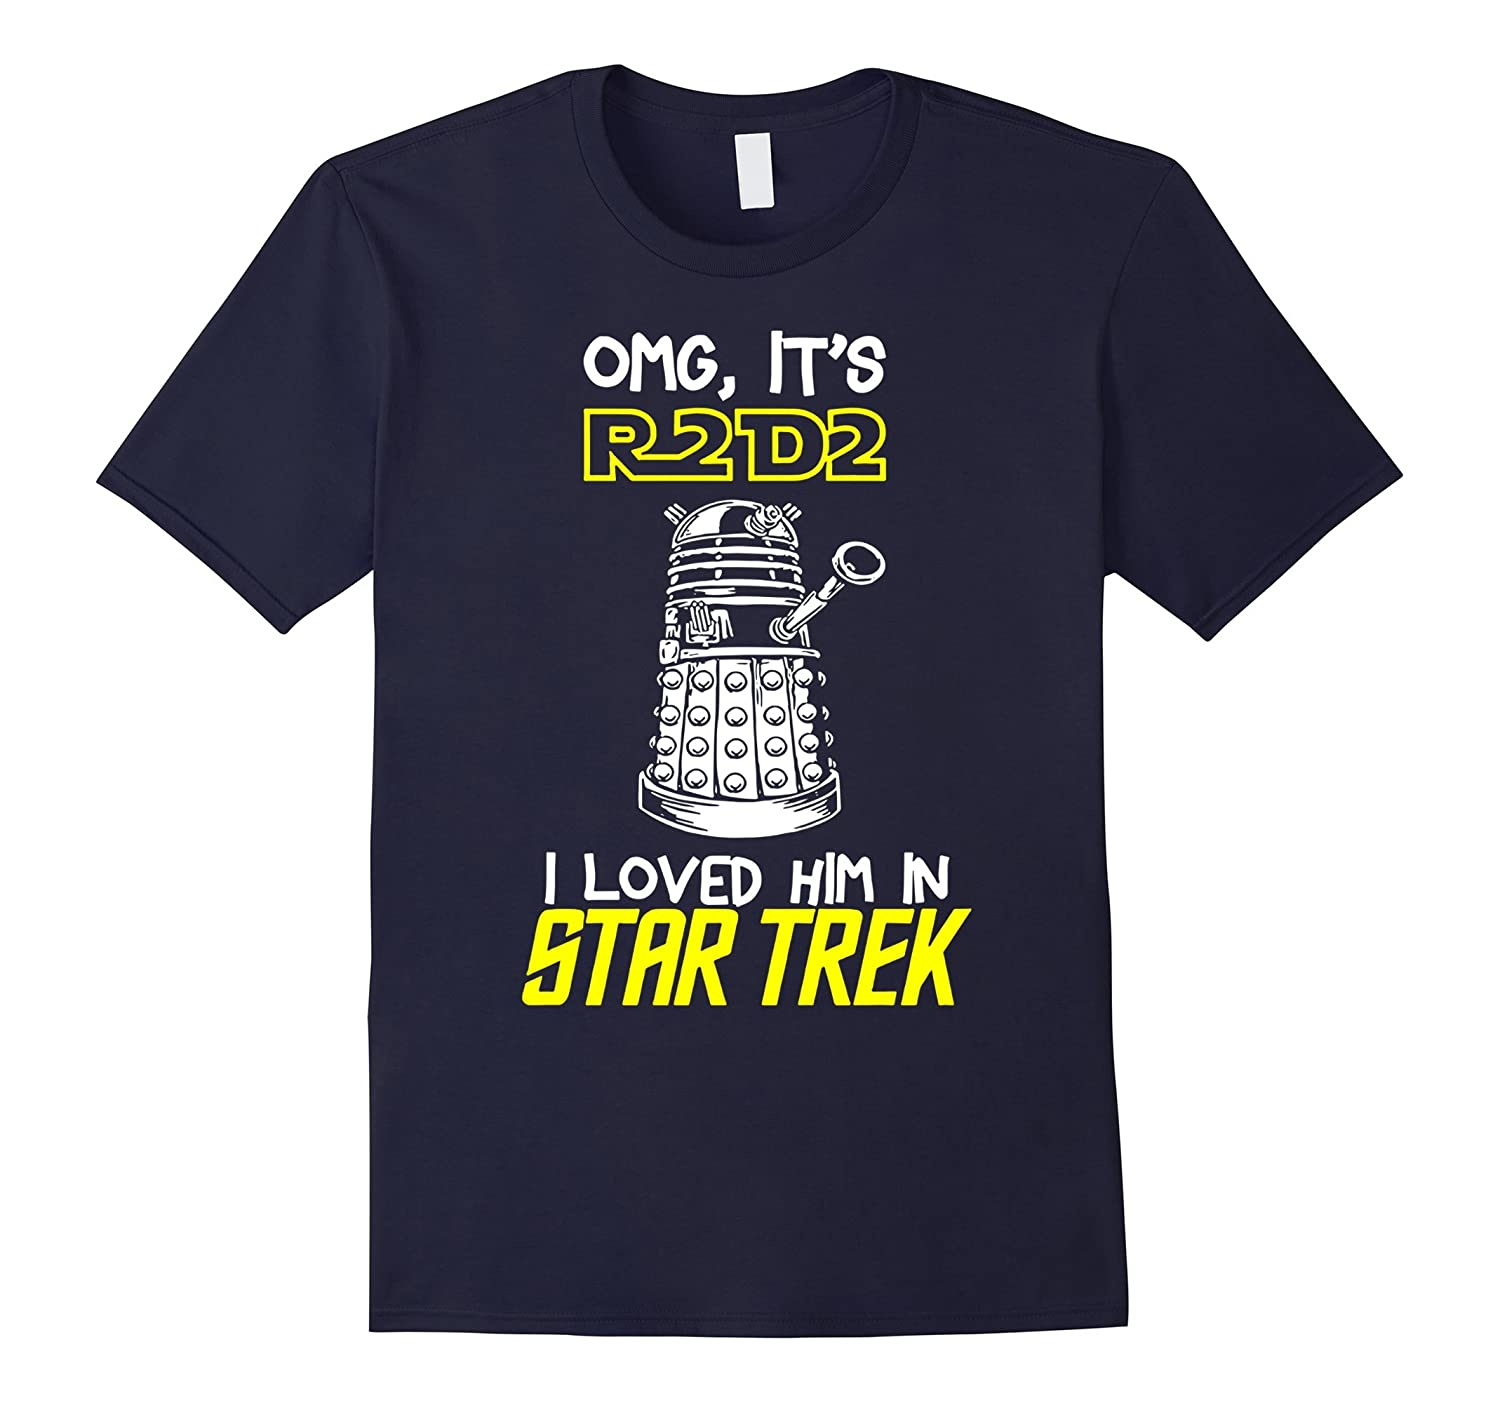 Oh My God Its R2 D2 I Love Him St-ar Tr-ek T-shirt